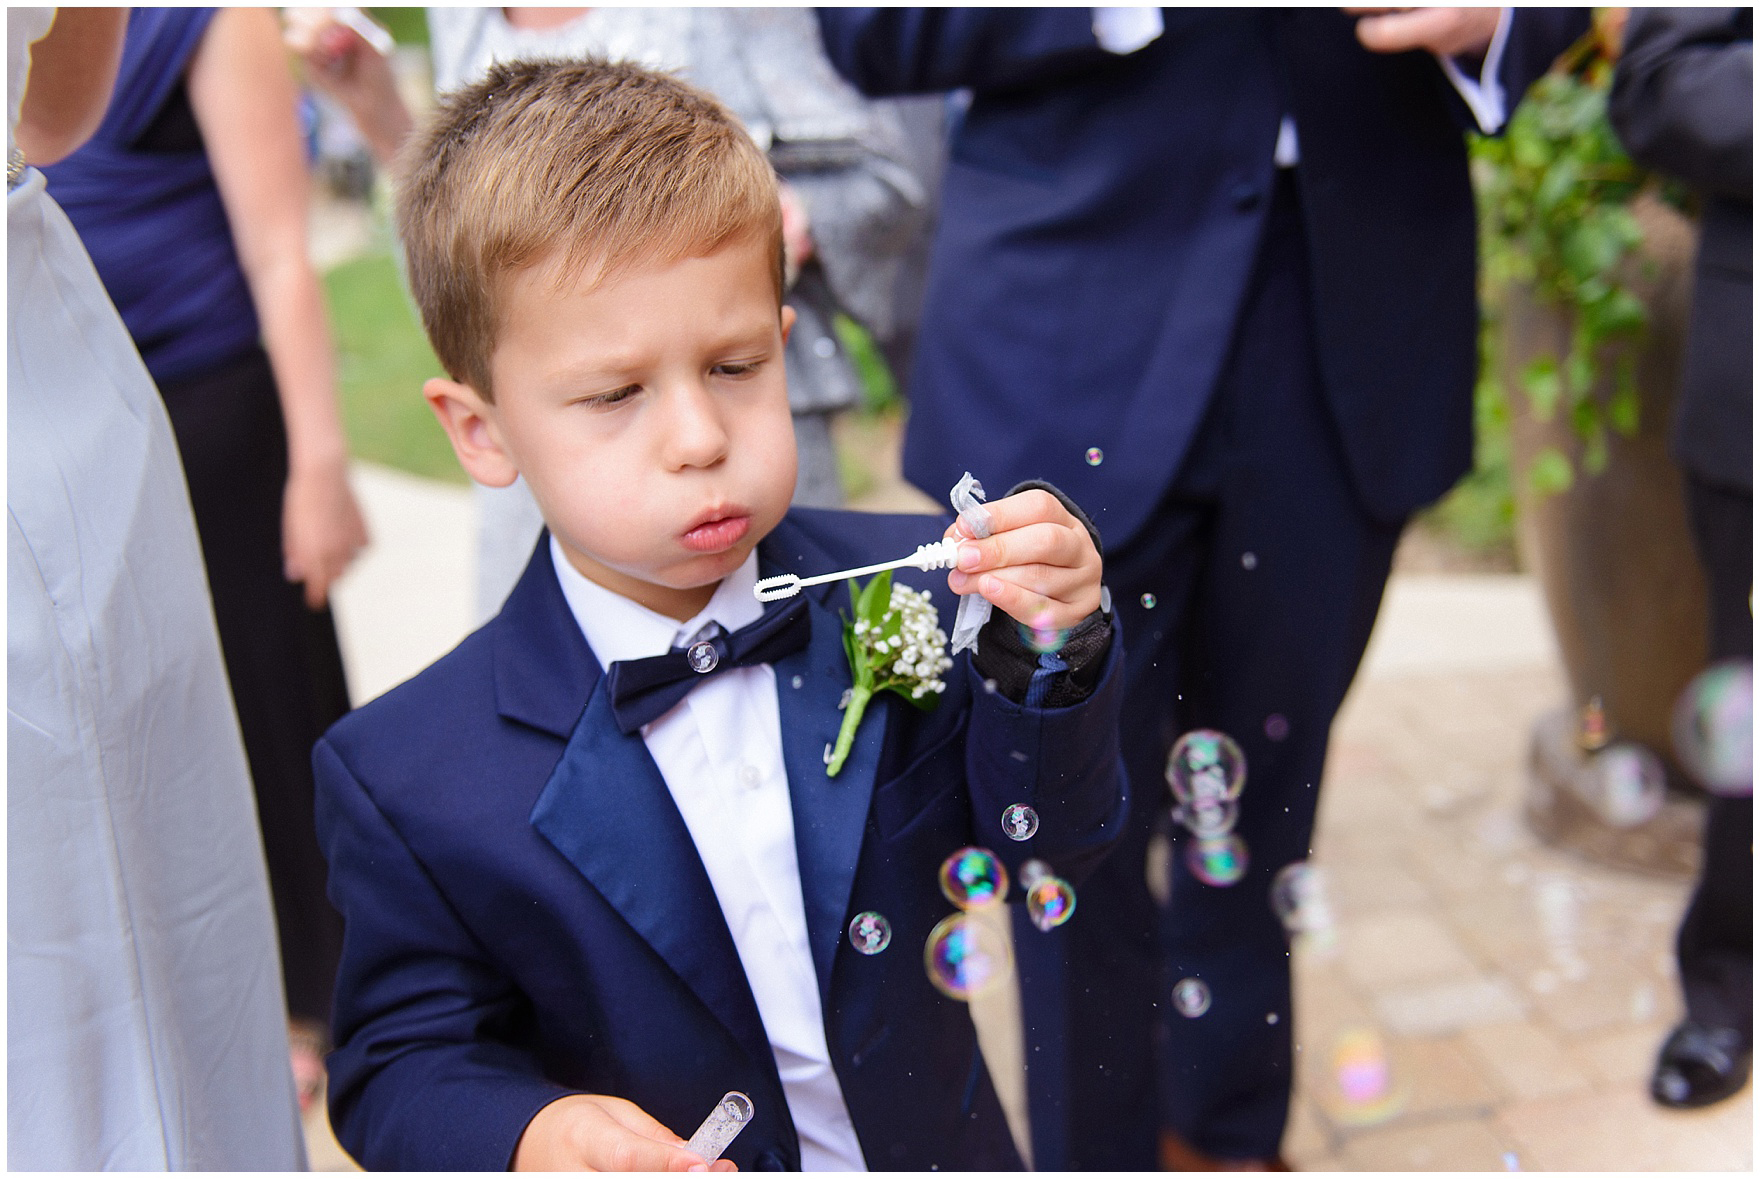 A ring bearer blows bubbles after a ceremony at St. Anne's Catholic Community, for a Biltmore Country Club Barrington wedding.